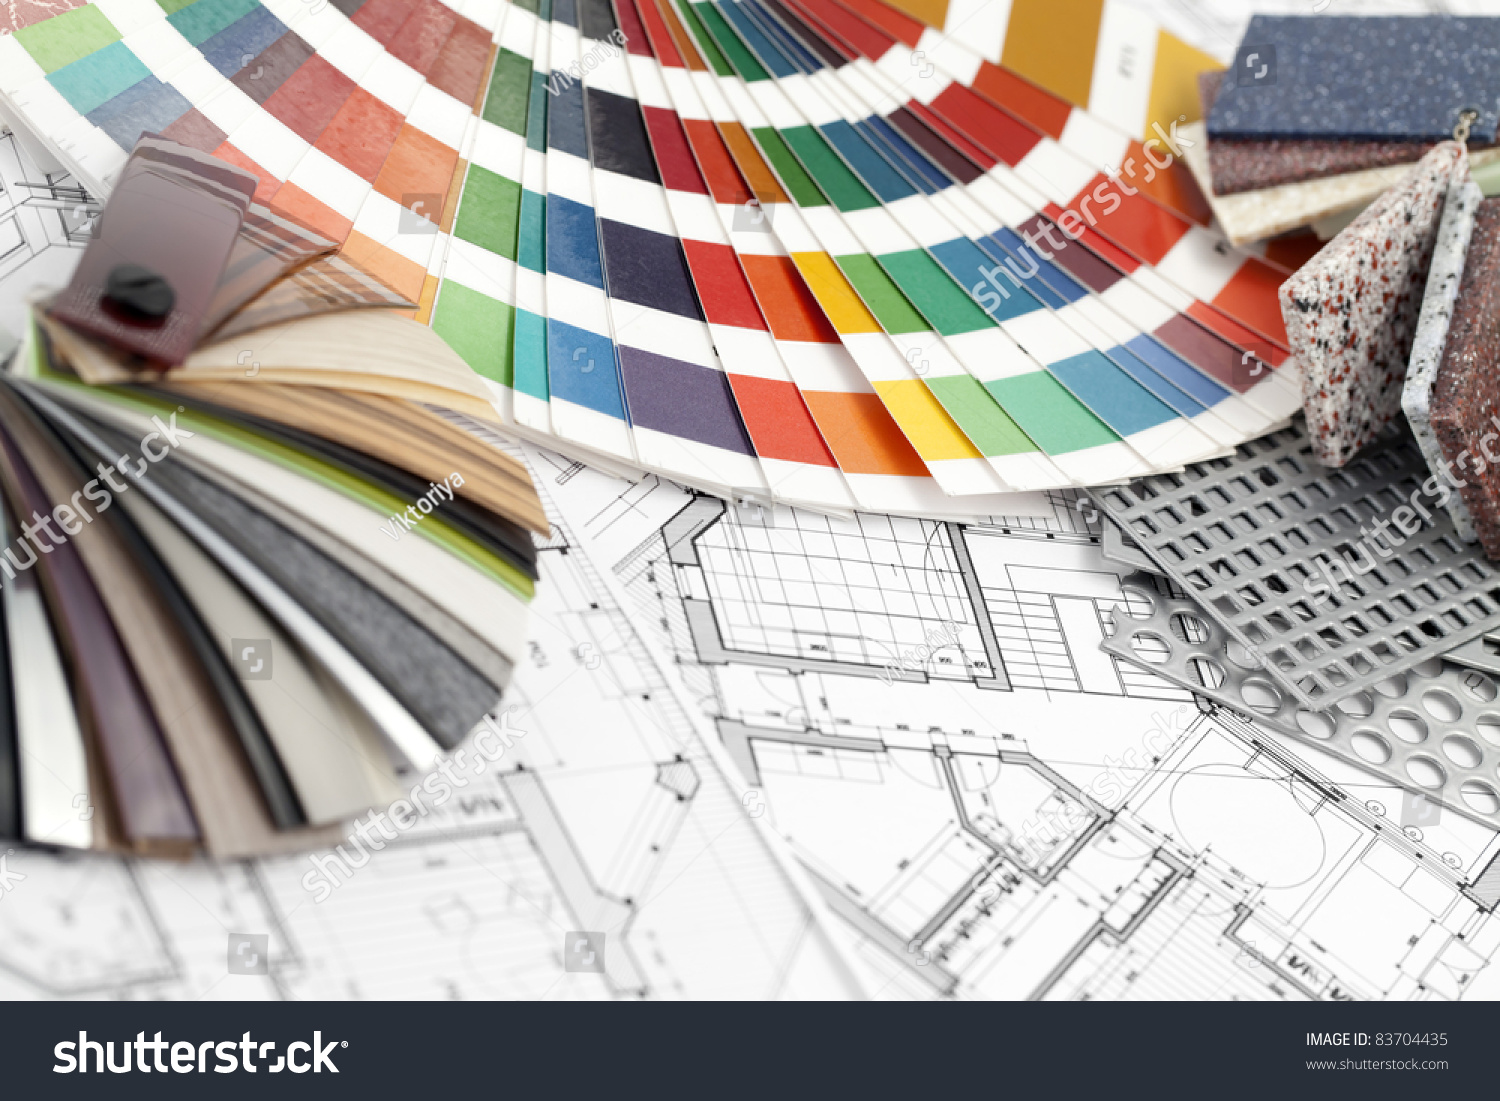 Palette of colors designs for interior works samples of plastics pvc for furnishing